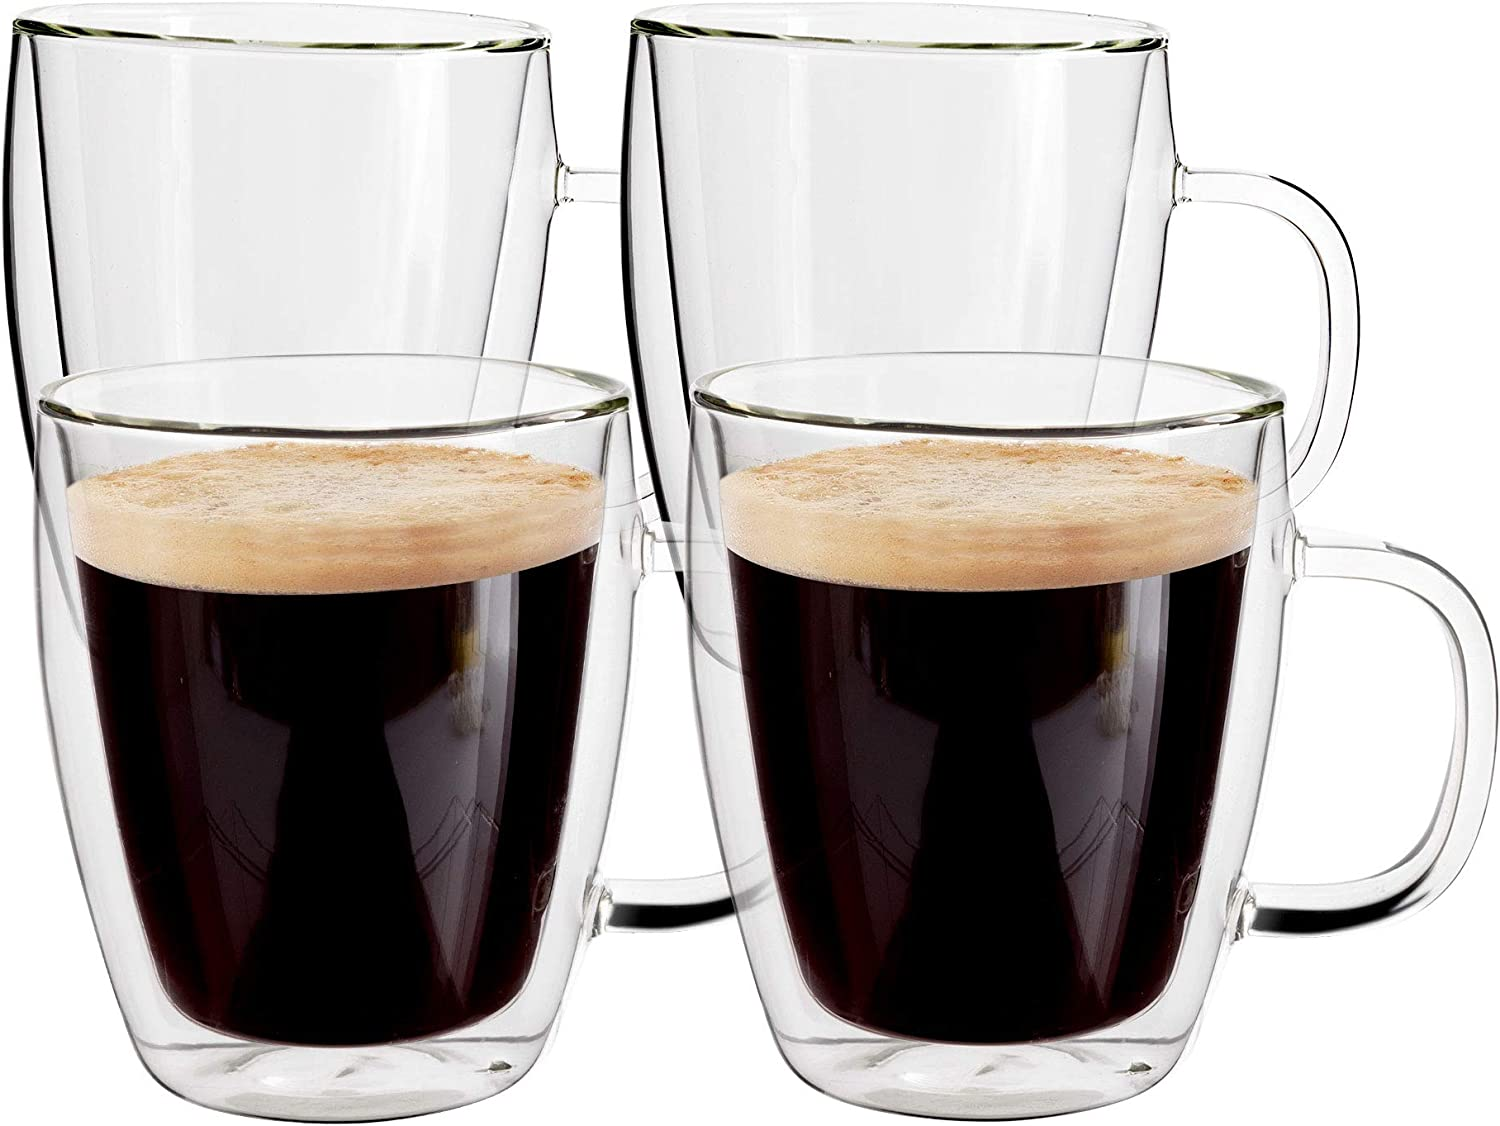 Yuncang Glass Coffee Mugs 4 Pack ,16 oz(500 ml),Double Wall Insulated Glass Mugs Cups with Handle,Cappuccino Cups Perfect for Americano,Latte,Beverage,Cappuccinos,Espresso Cups